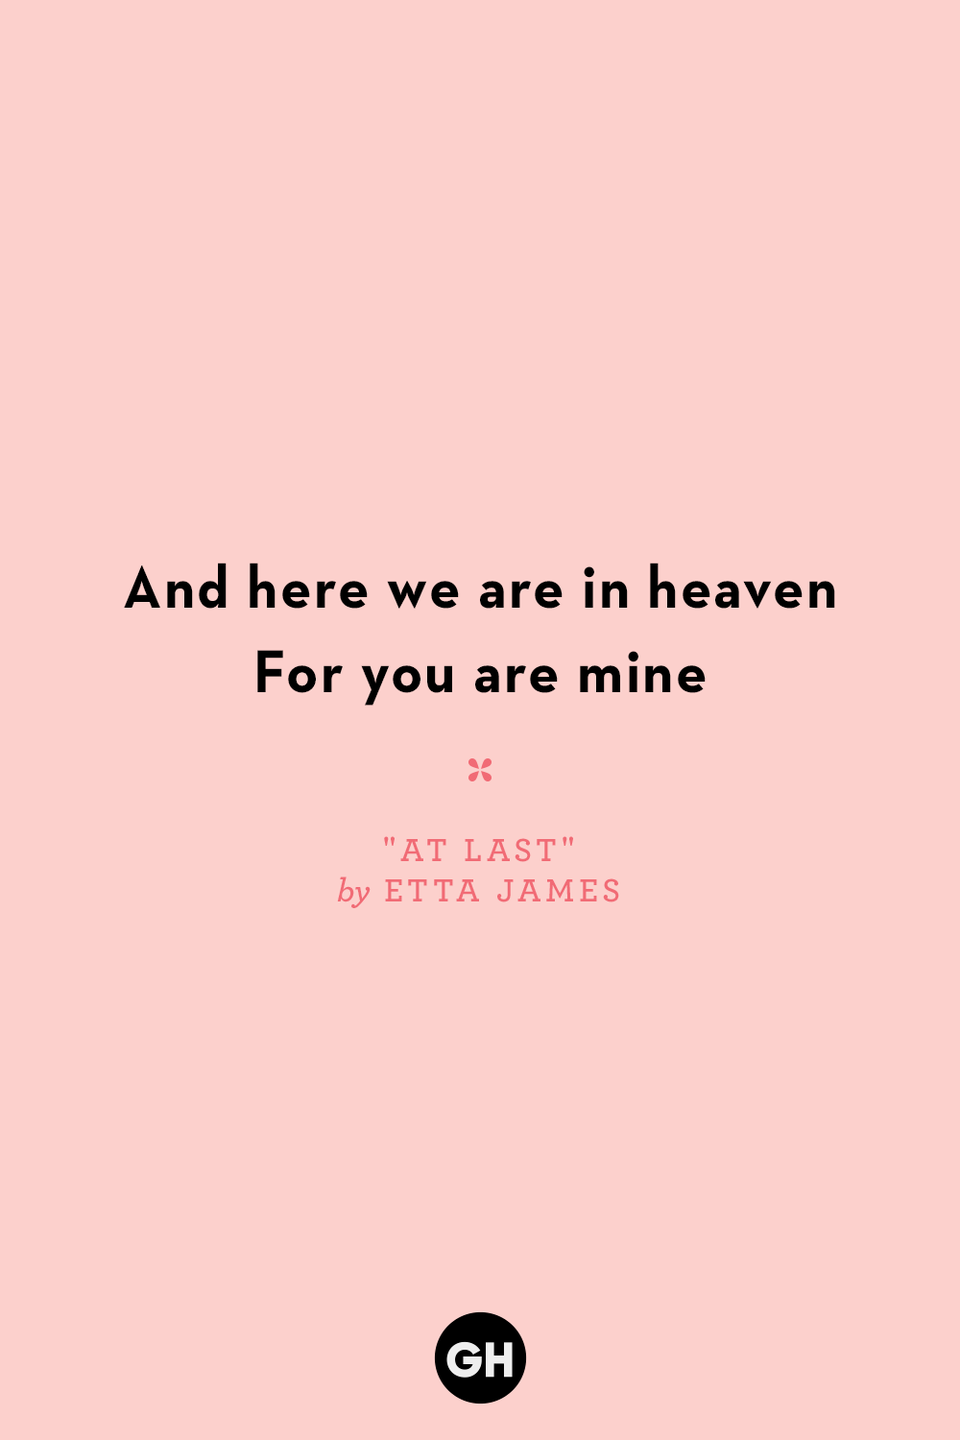 <p>And here we are in heaven</p><p>For you are mine</p>